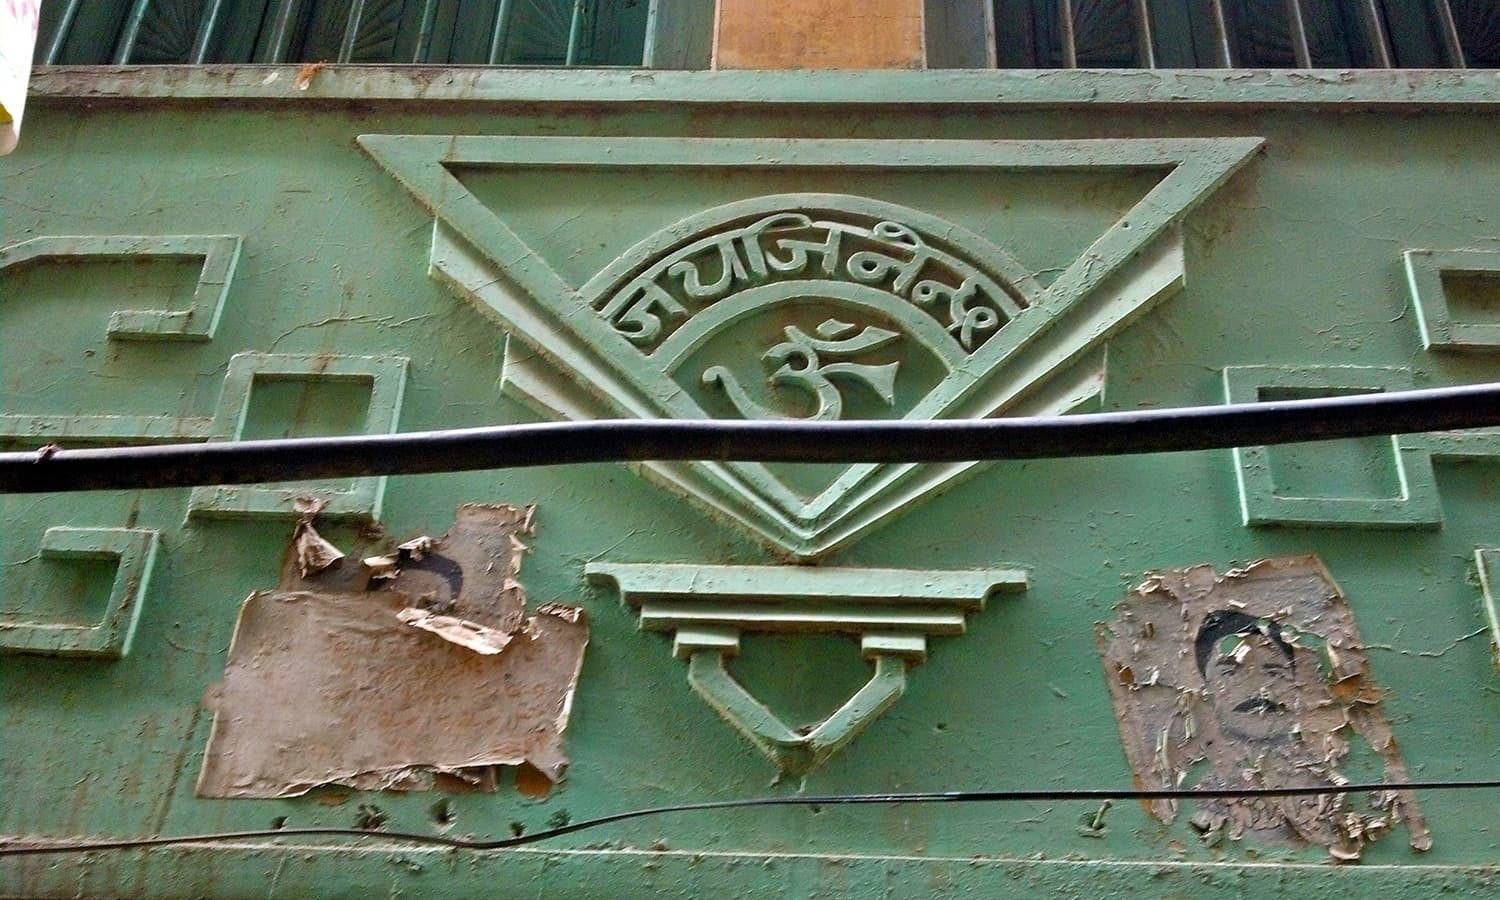 The Jain greeting, *Jai Janendra*, written on the façade of a house. It is still preserved by residents out of respect for the heritage.